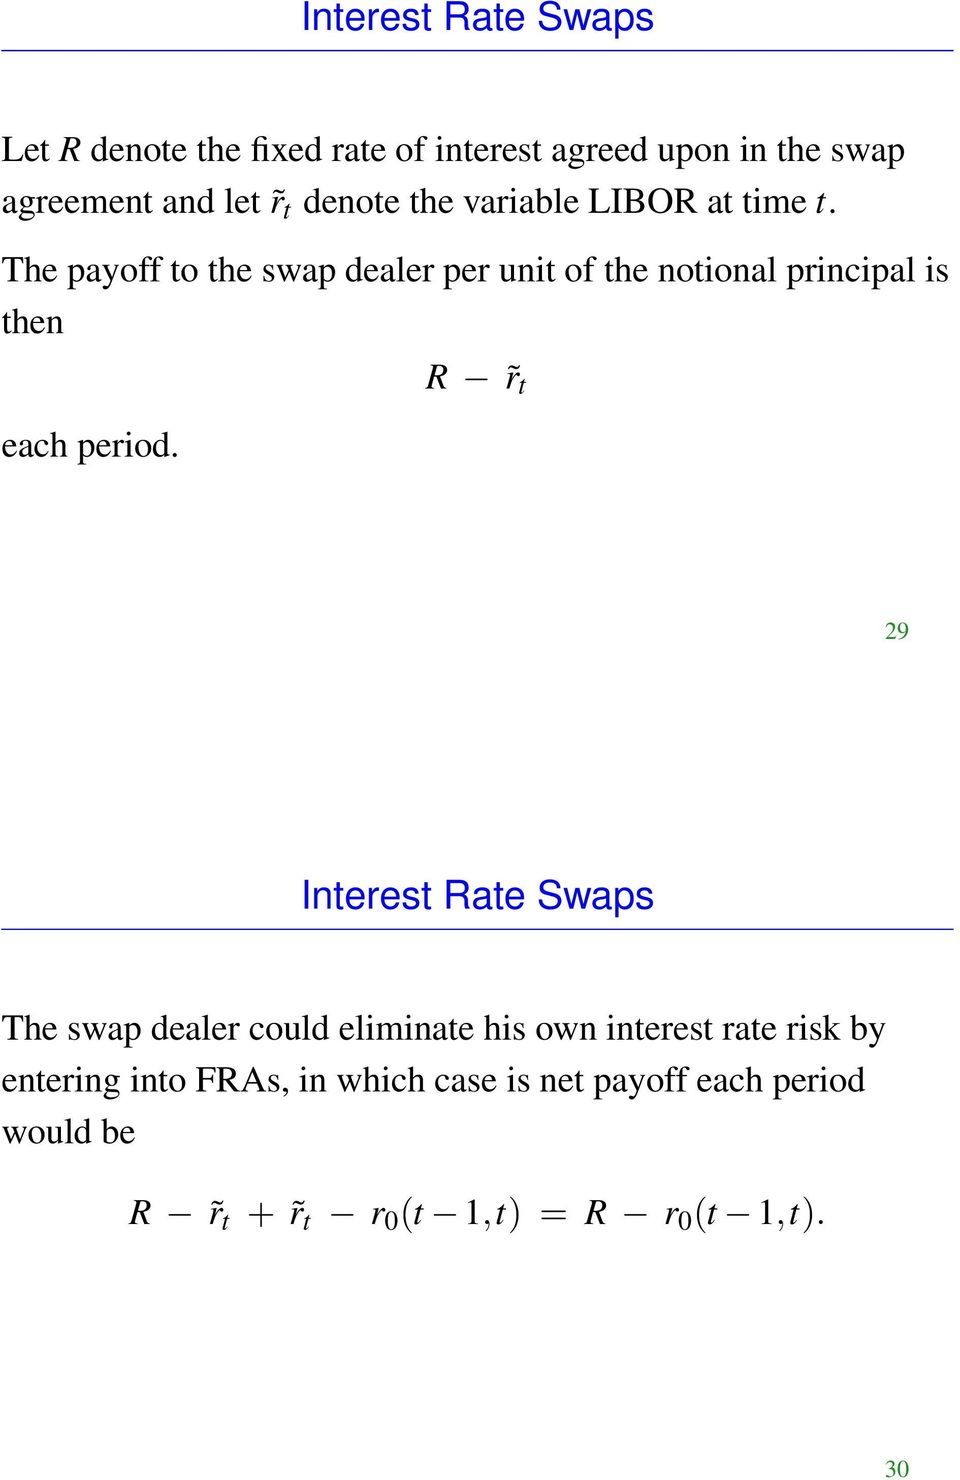 The payoff to the swap dealer per unit of the notional principal is then each period.